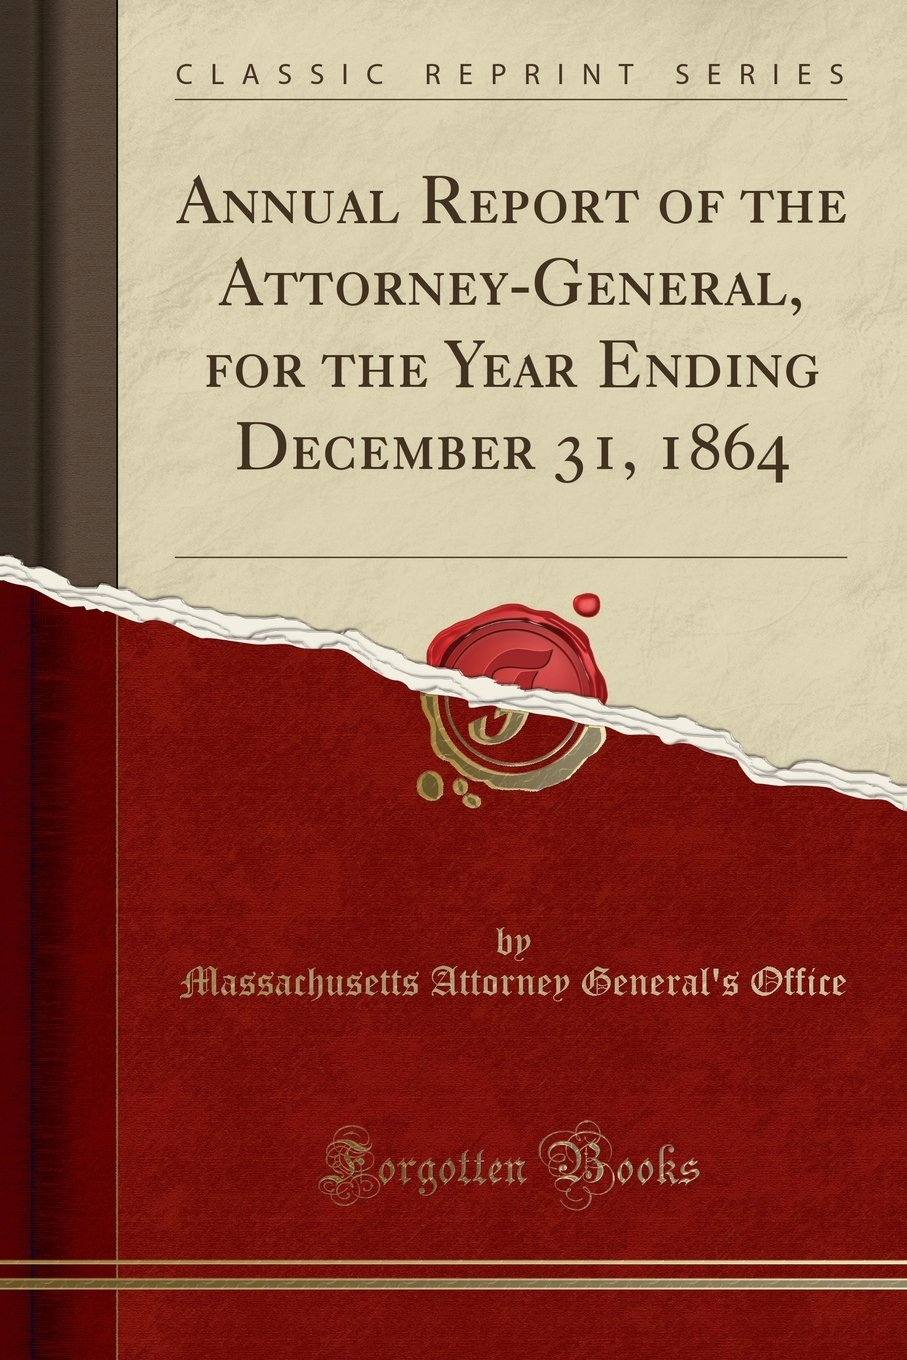 Annual Report of the Attorney-General, for the Year Ending December 31, 1864 (Classic Reprint) PDF